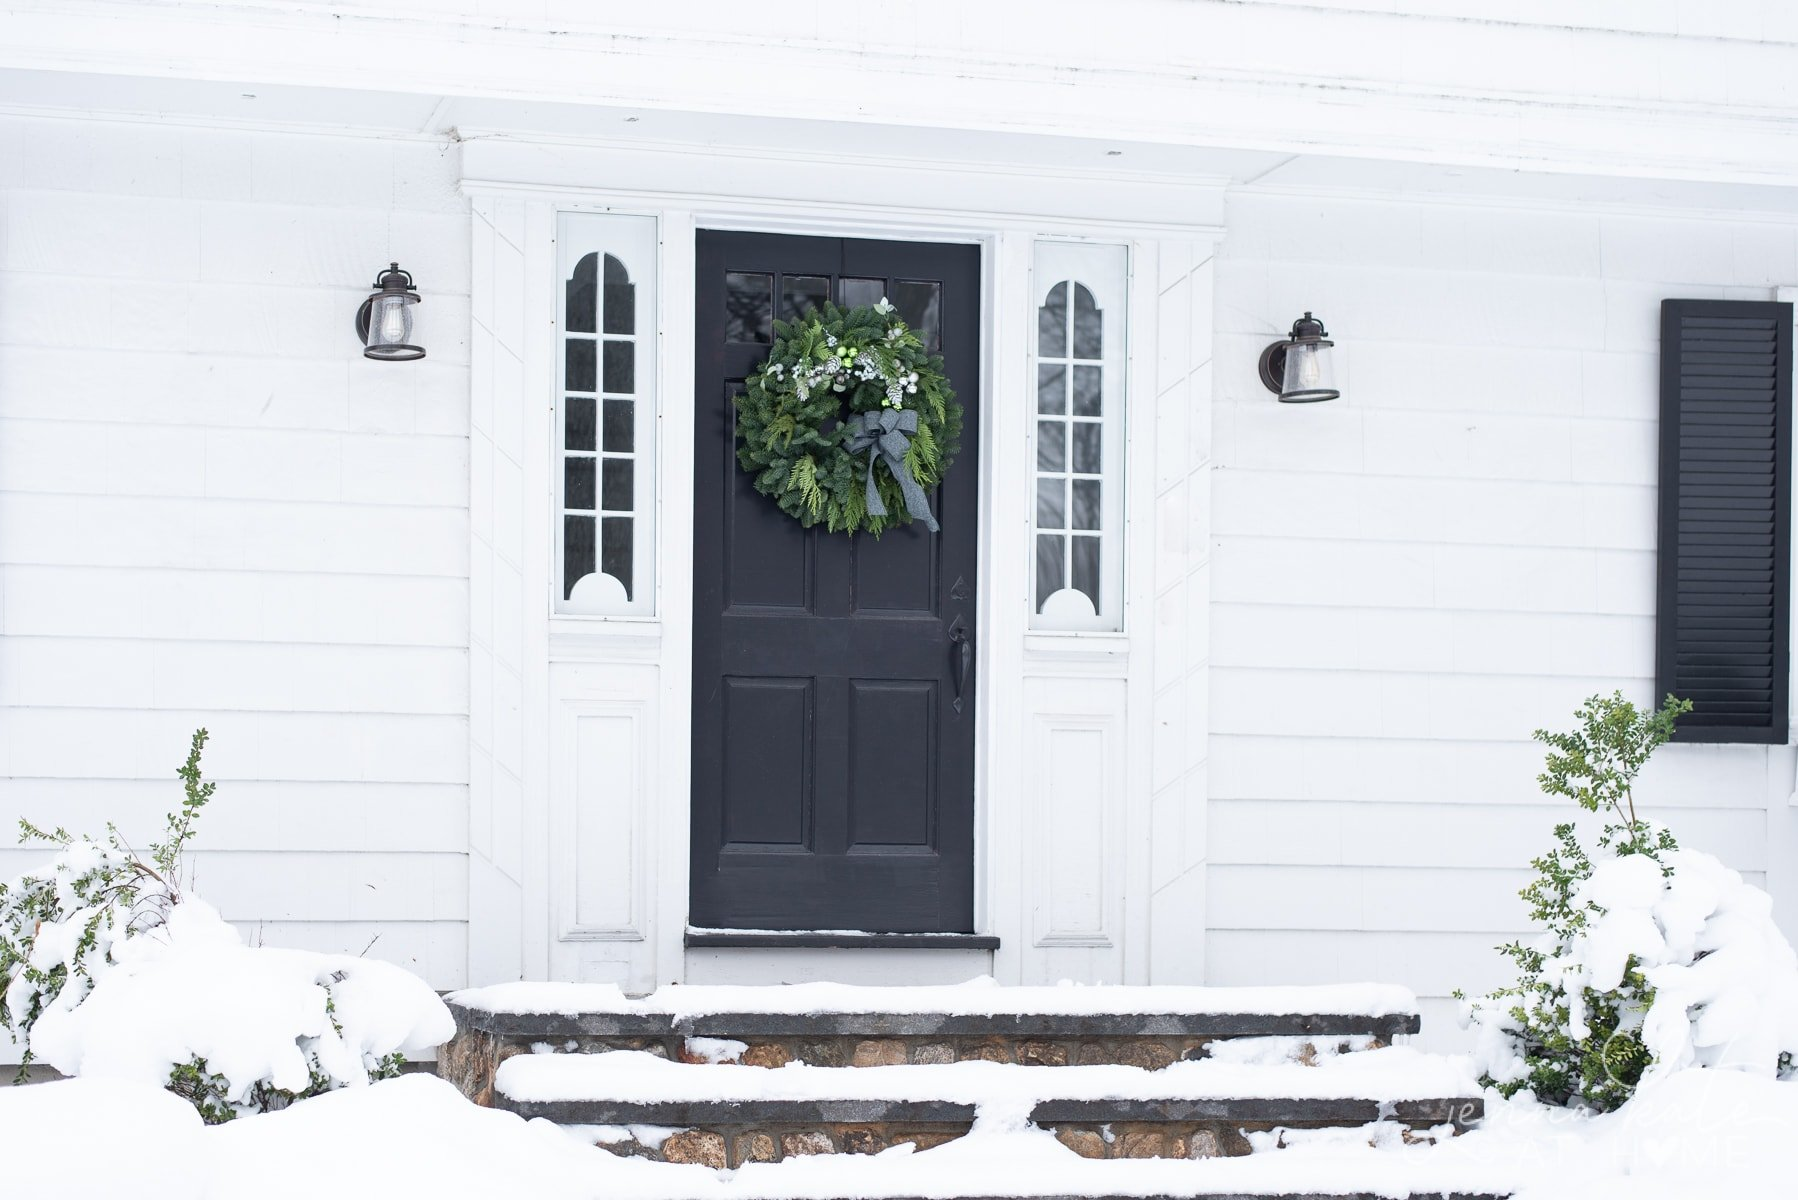 Front entryway with the steps covered in snow